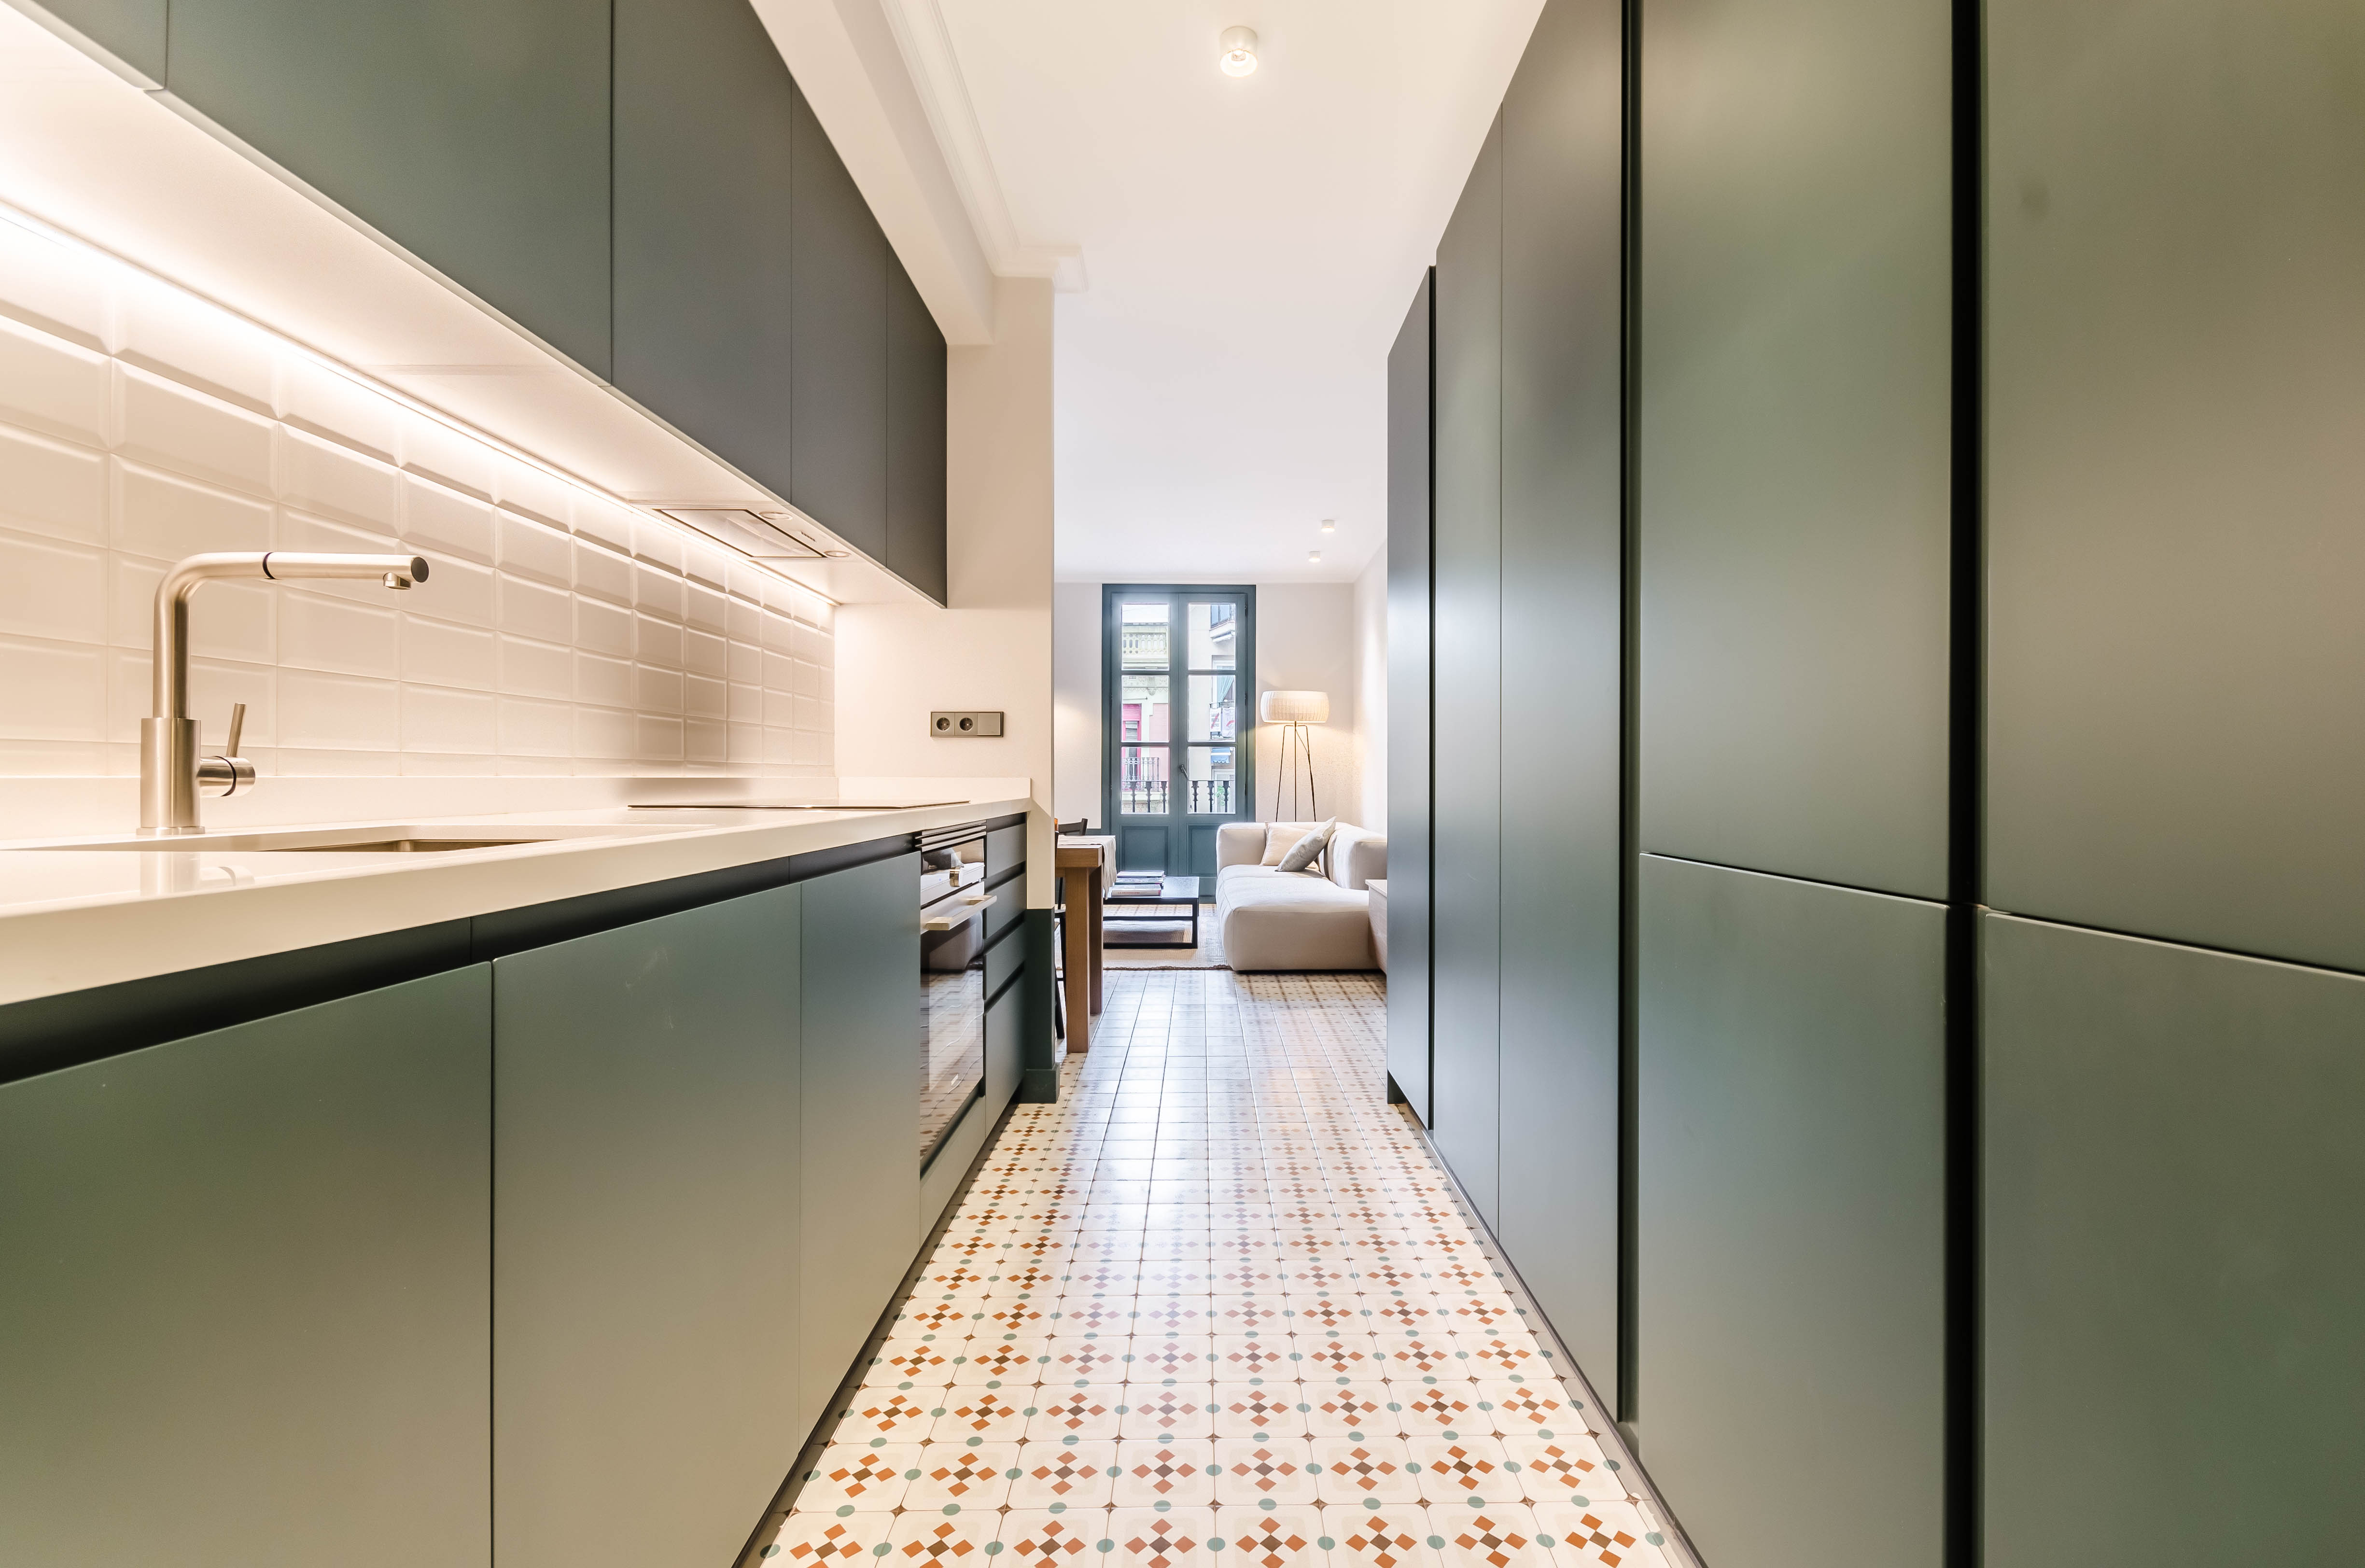 Apartment in Barcelona - eixample. Balcony.3 bedrooms. For sale: 435.000 €.